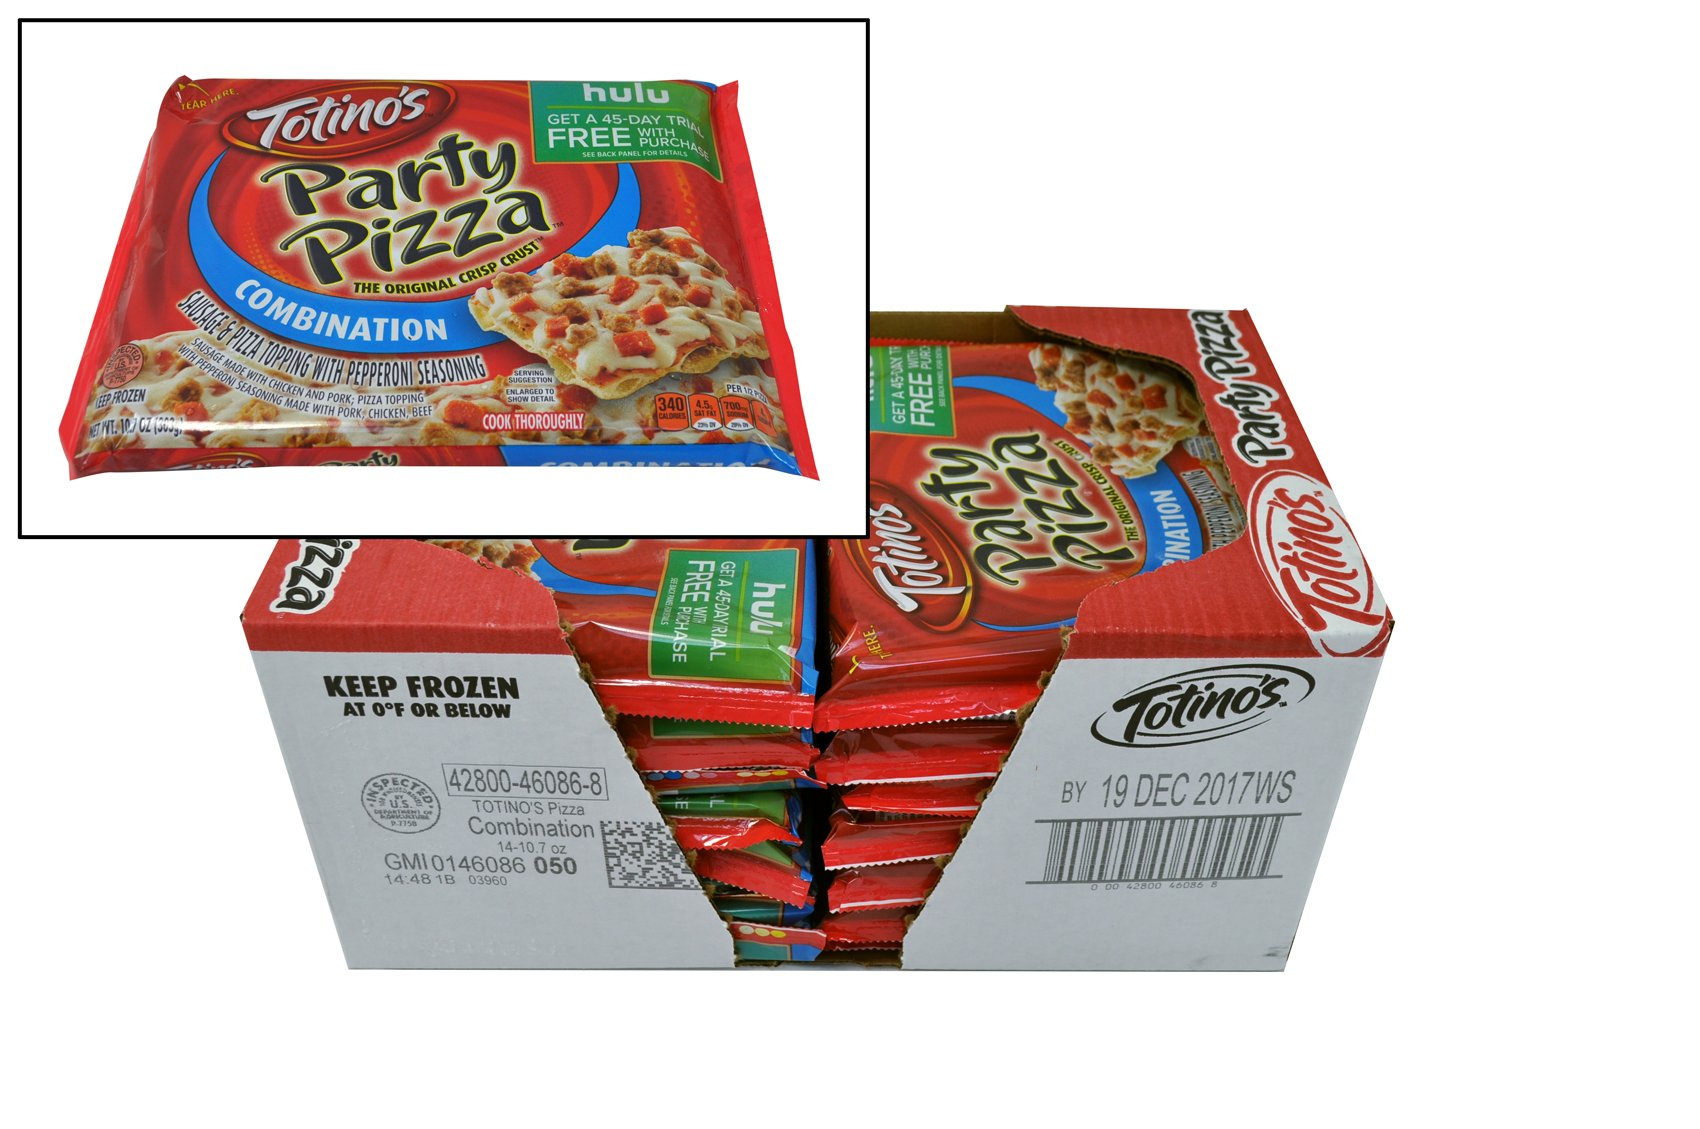 Totino's Combination Party Pizza, 10.7 oz., (14 count)